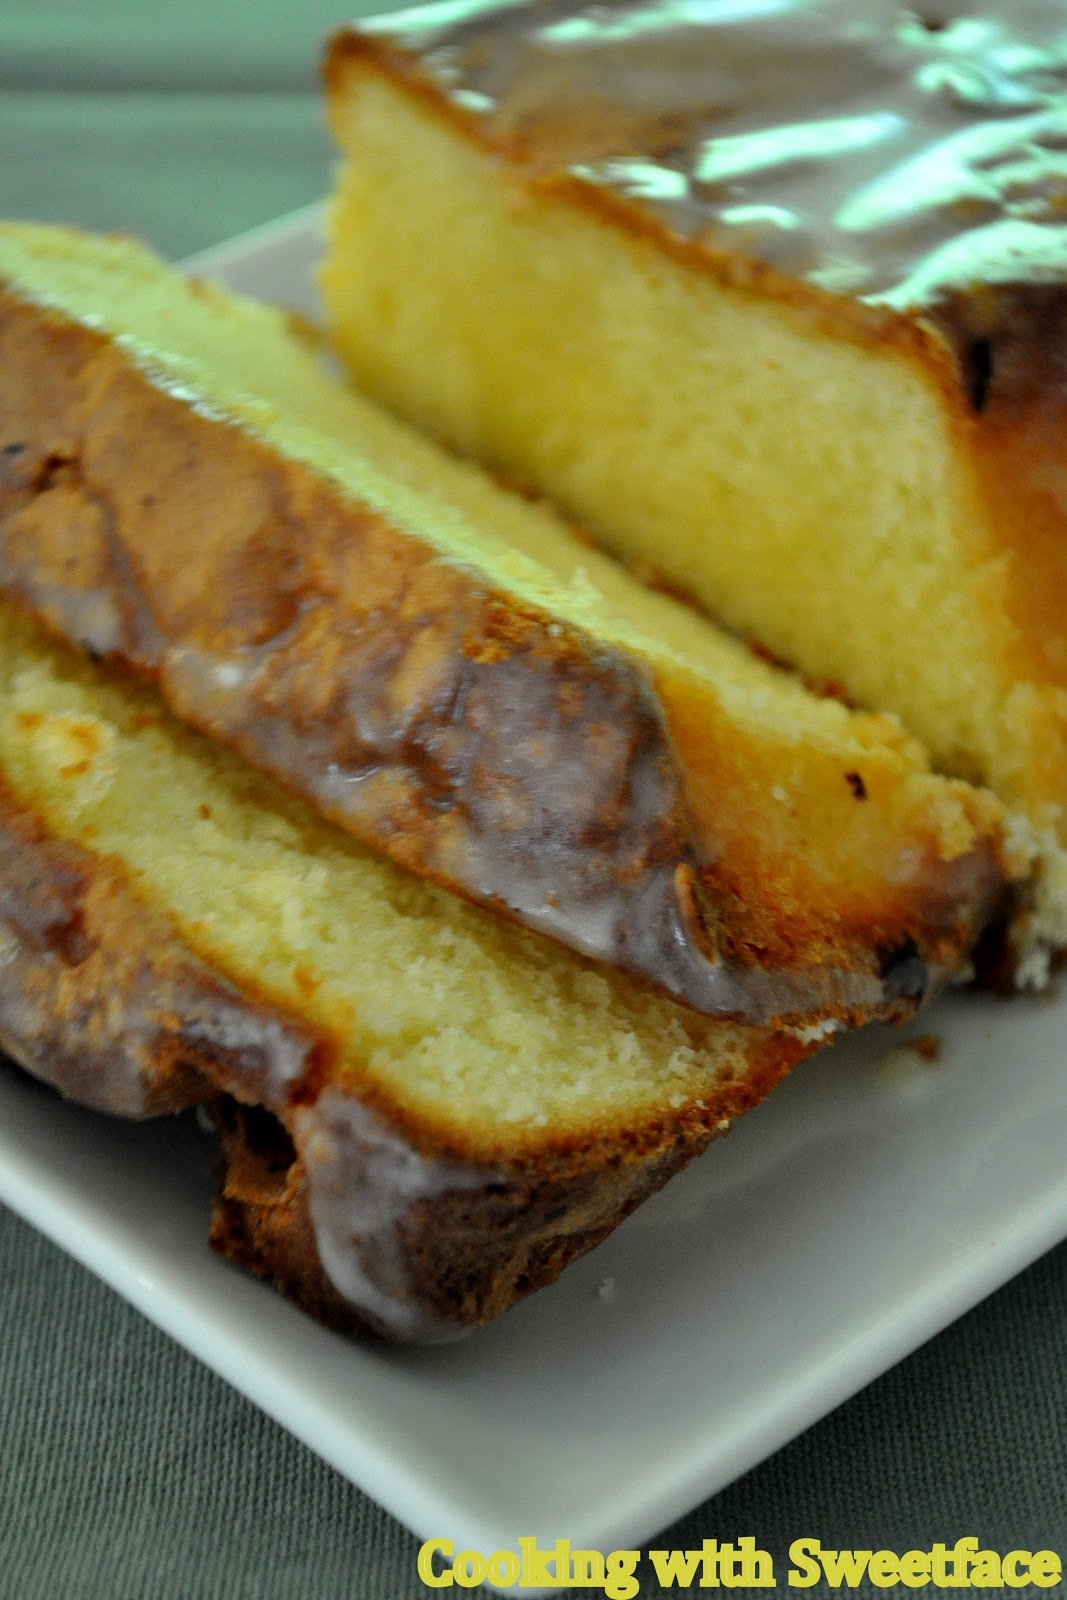 CookingwithSweetface: Lemon Sour Cream Pound Cake